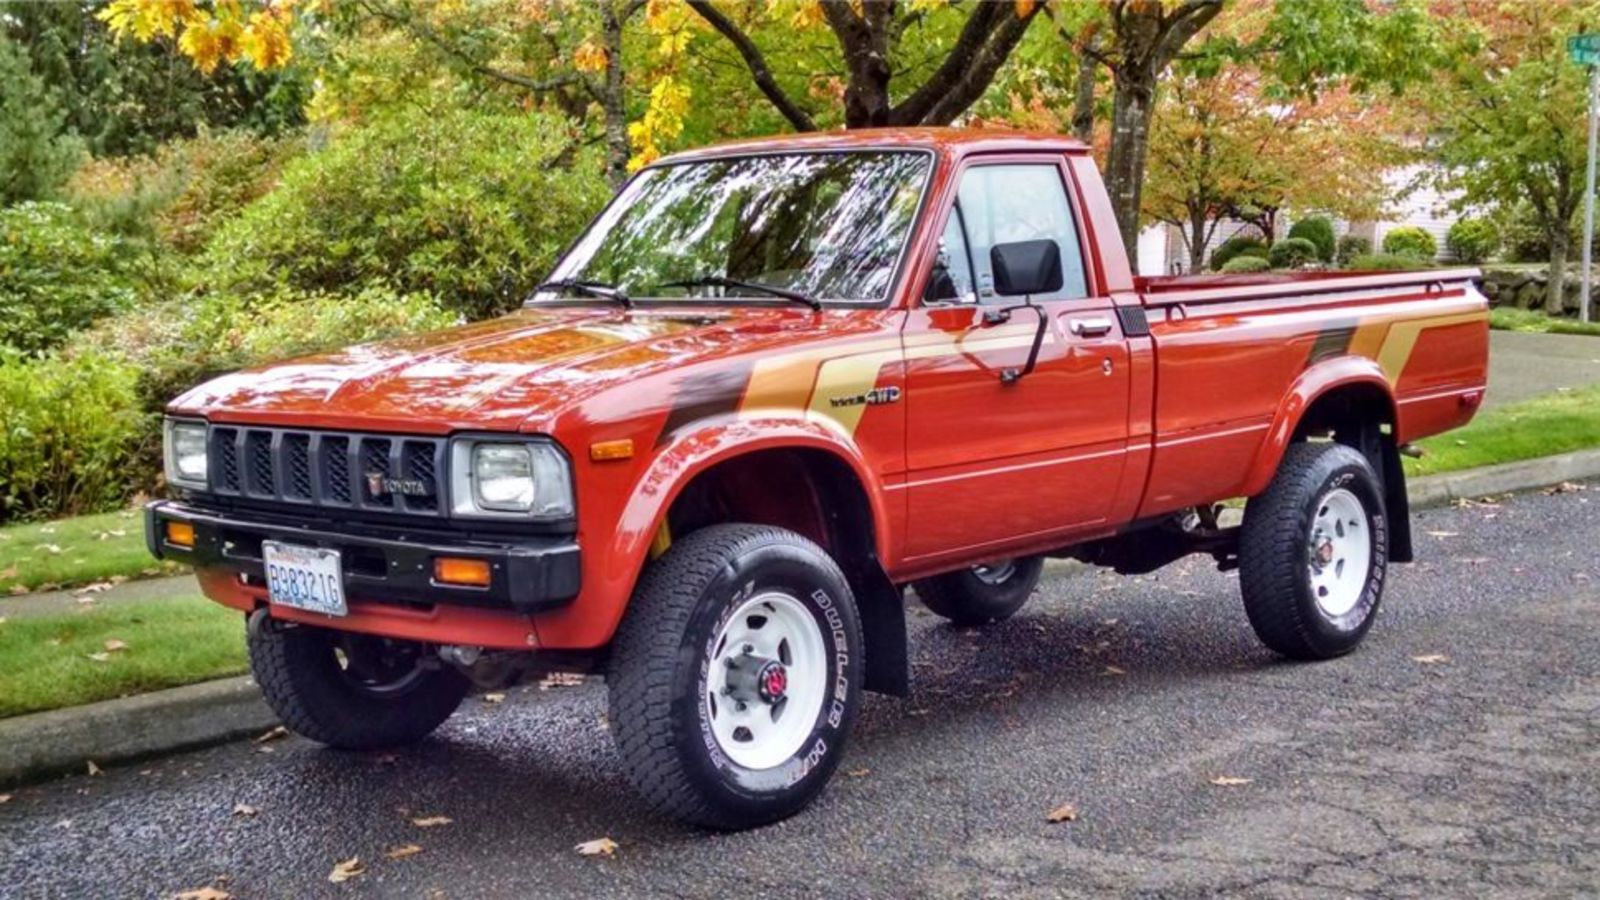 You Could Buy This Perfect 80 S Classic For The Price Of A Nissan Versa Toyota Trucks For Sale Toyota Trucks Truck Paint Jobs